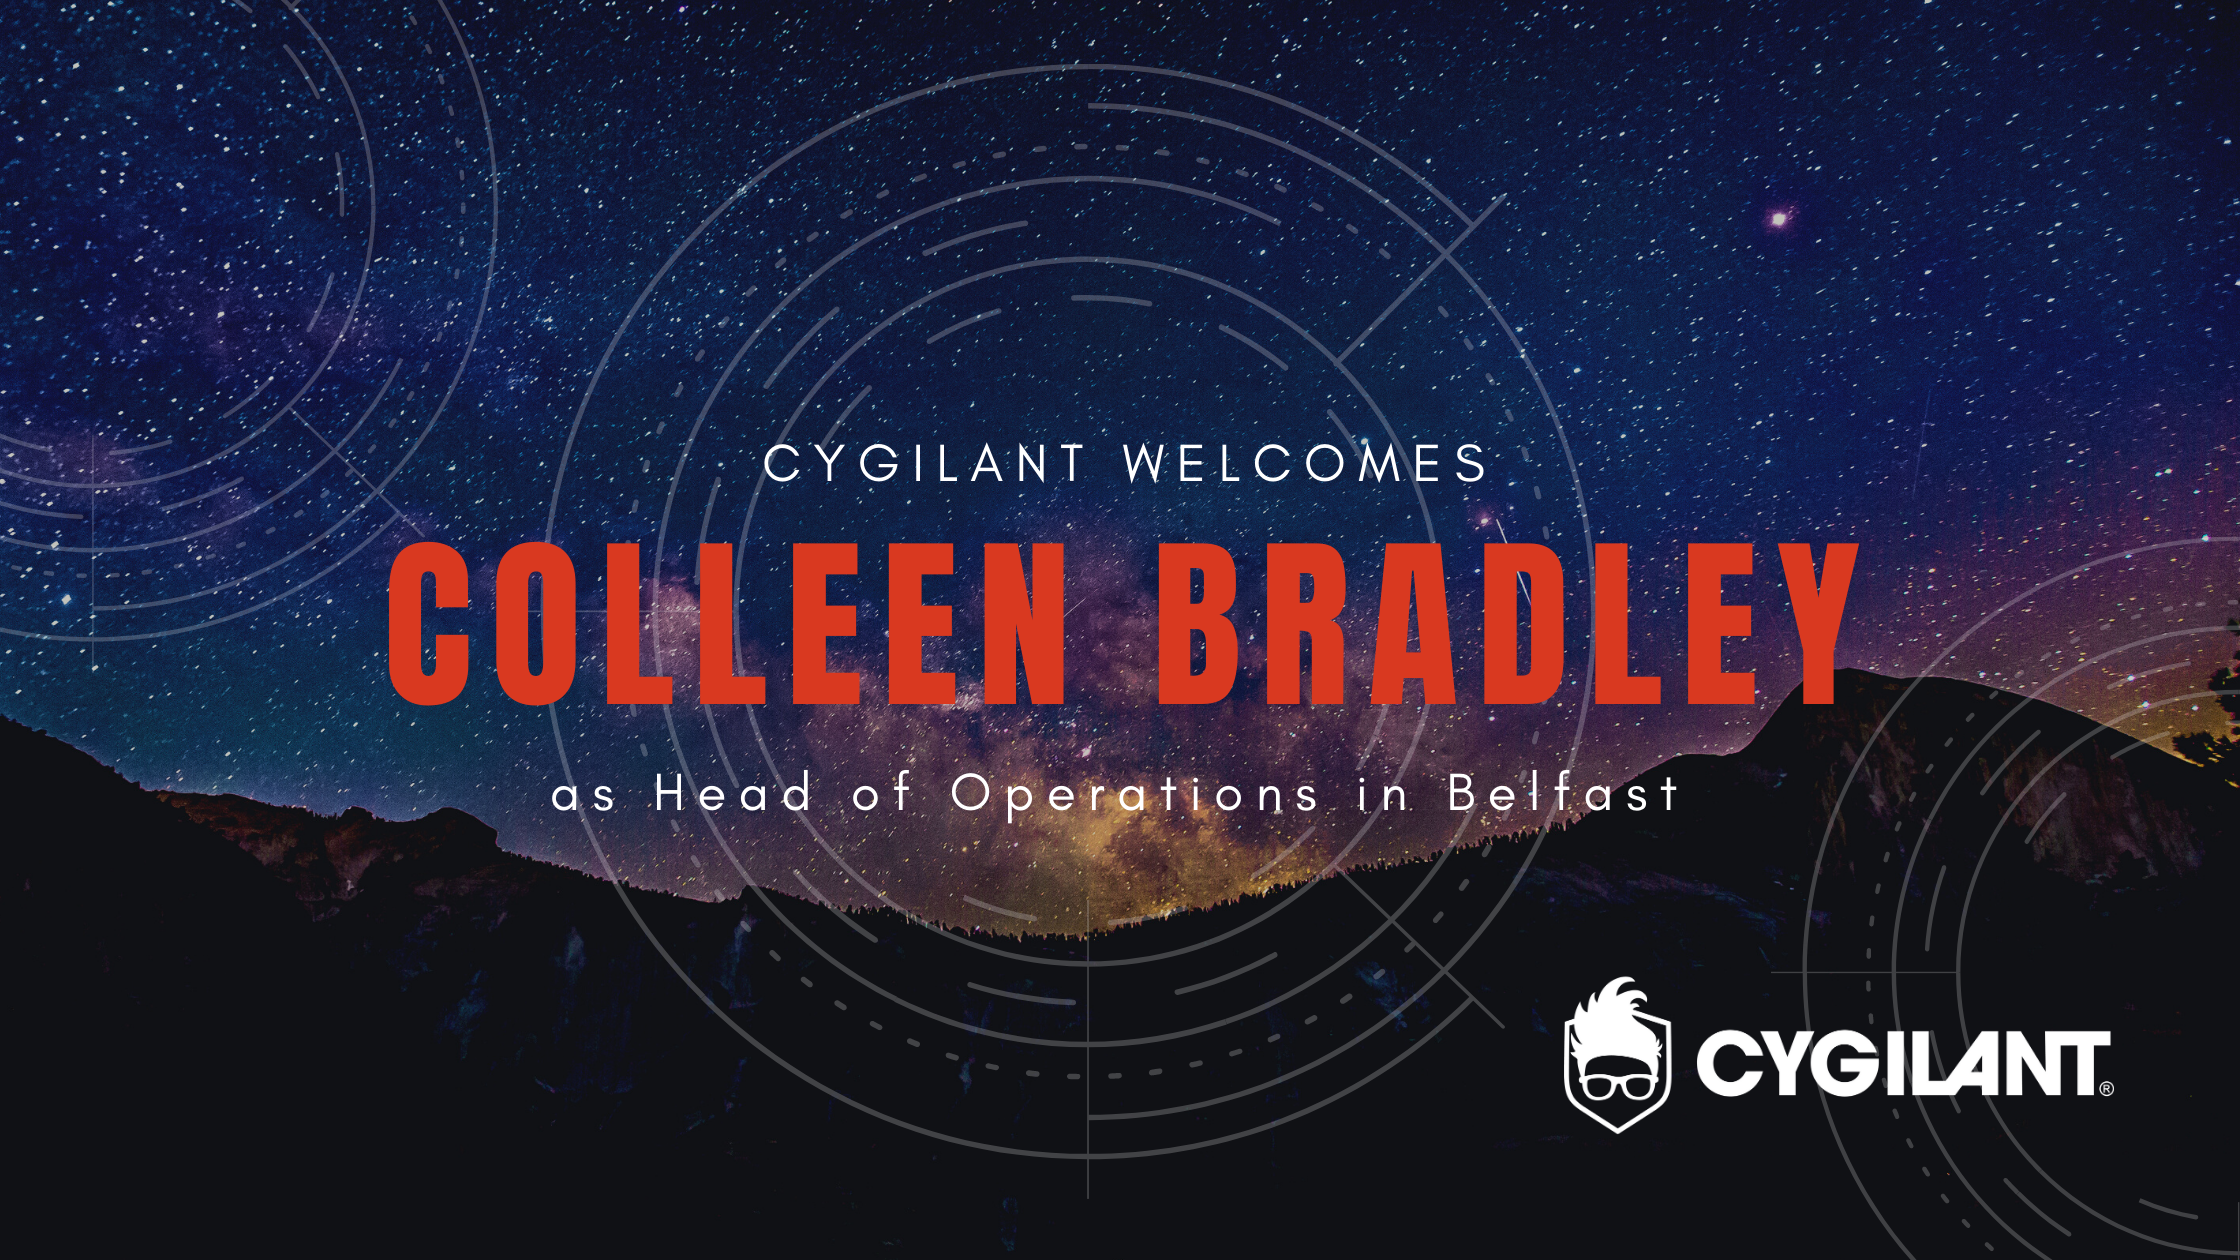 Cygilant Welcomes Colleen Bradley as Head of Operations in Belfast